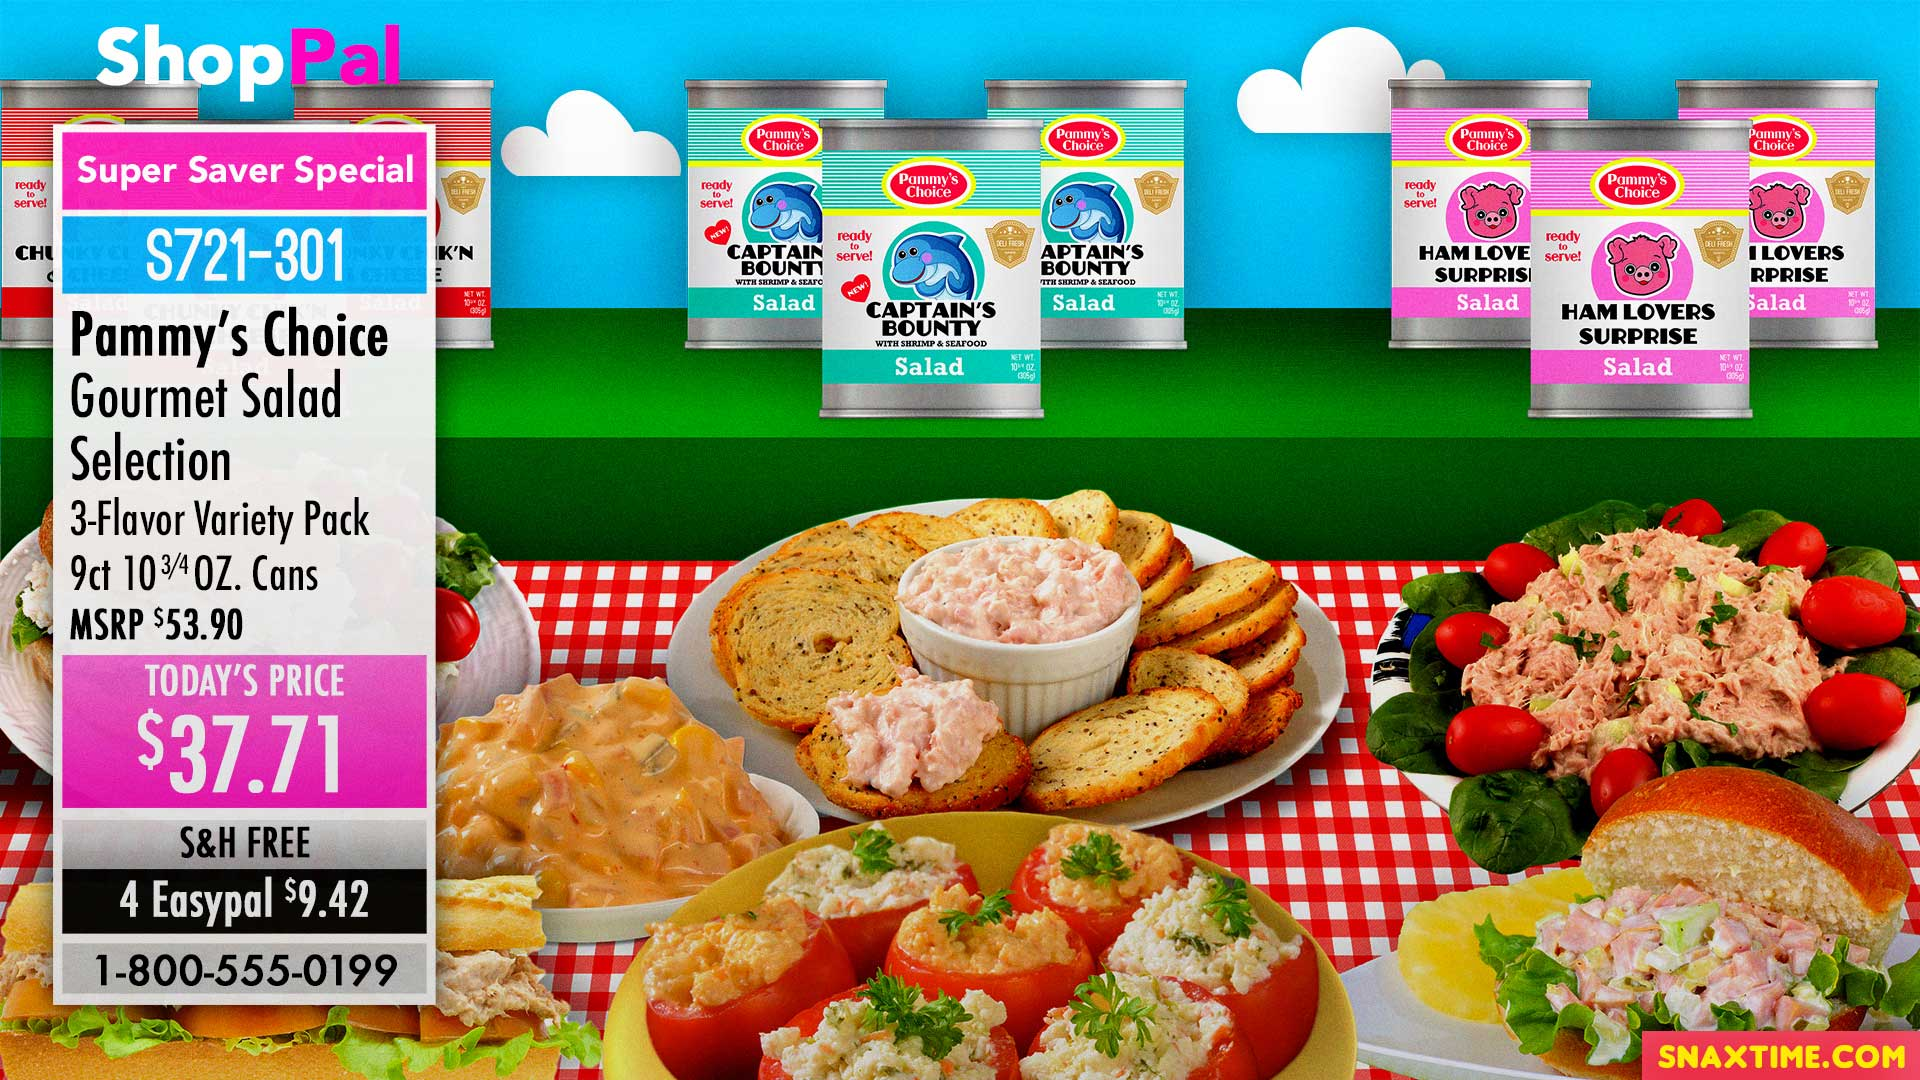 Free Zoom Background - Home Shopping QVC HSN Canned Food Meat Salad